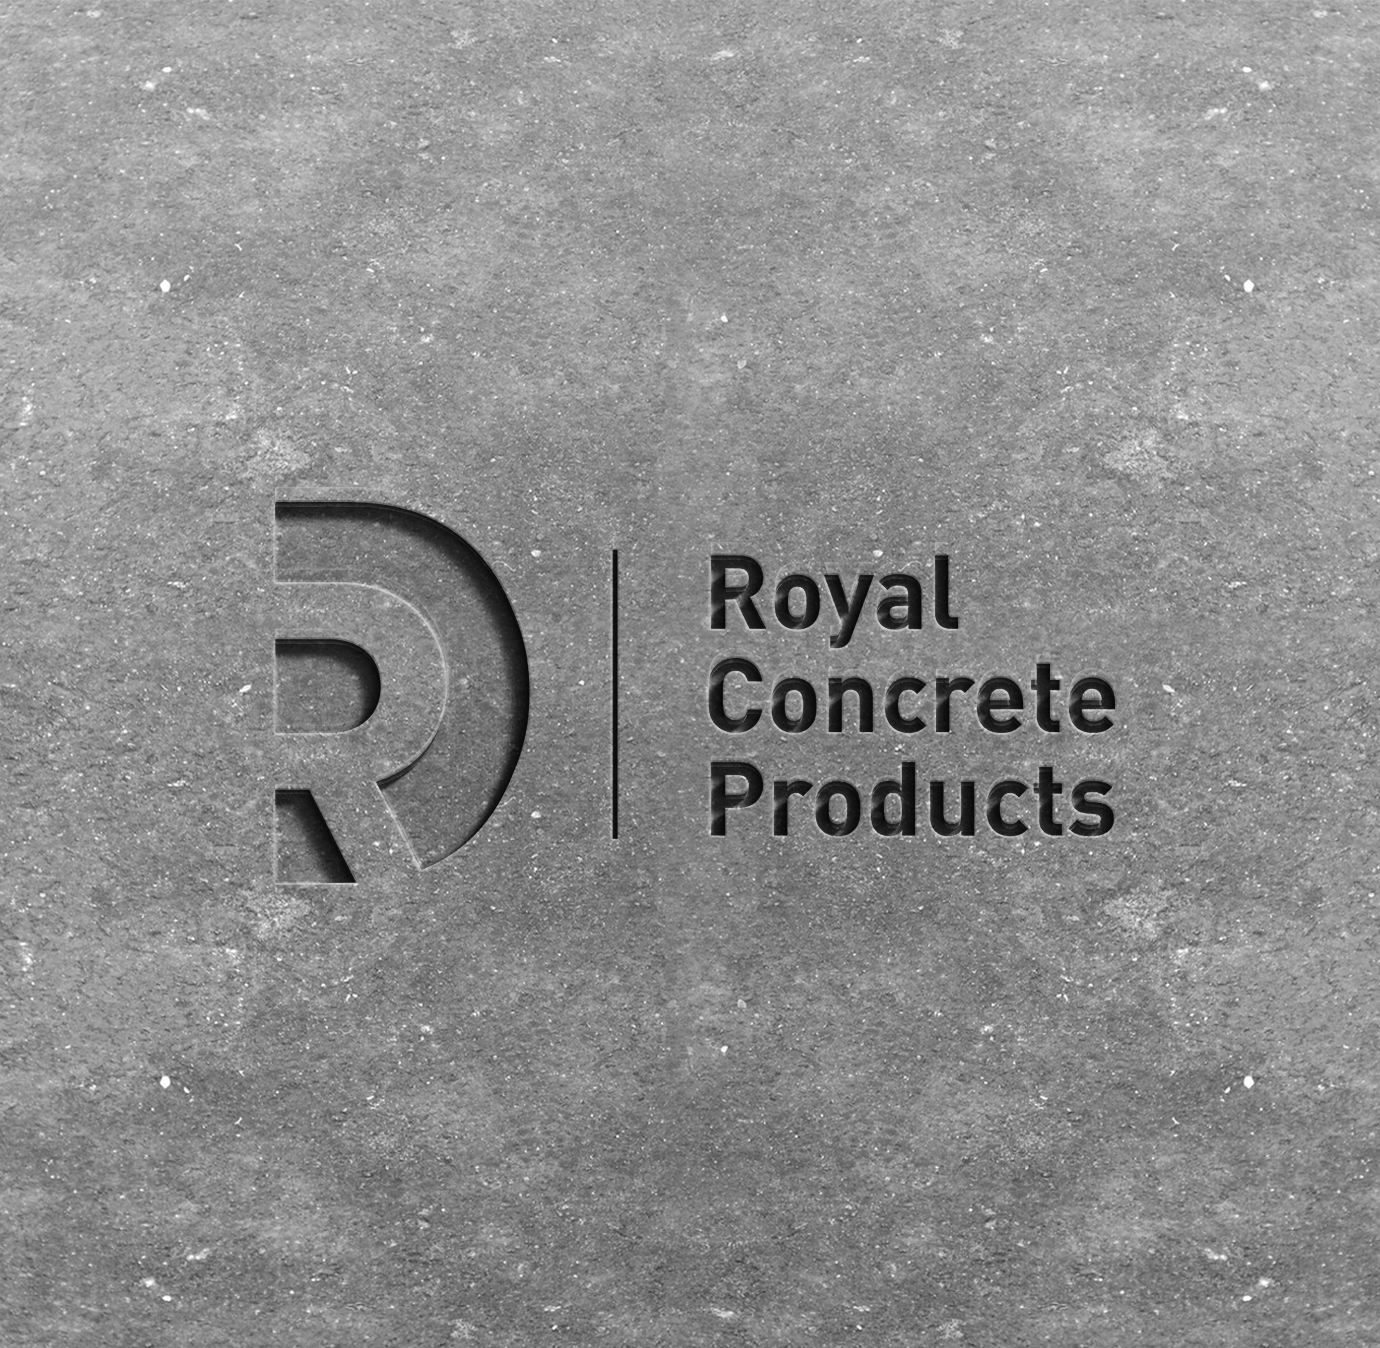 logo-royal-concrete-yoenpaperland